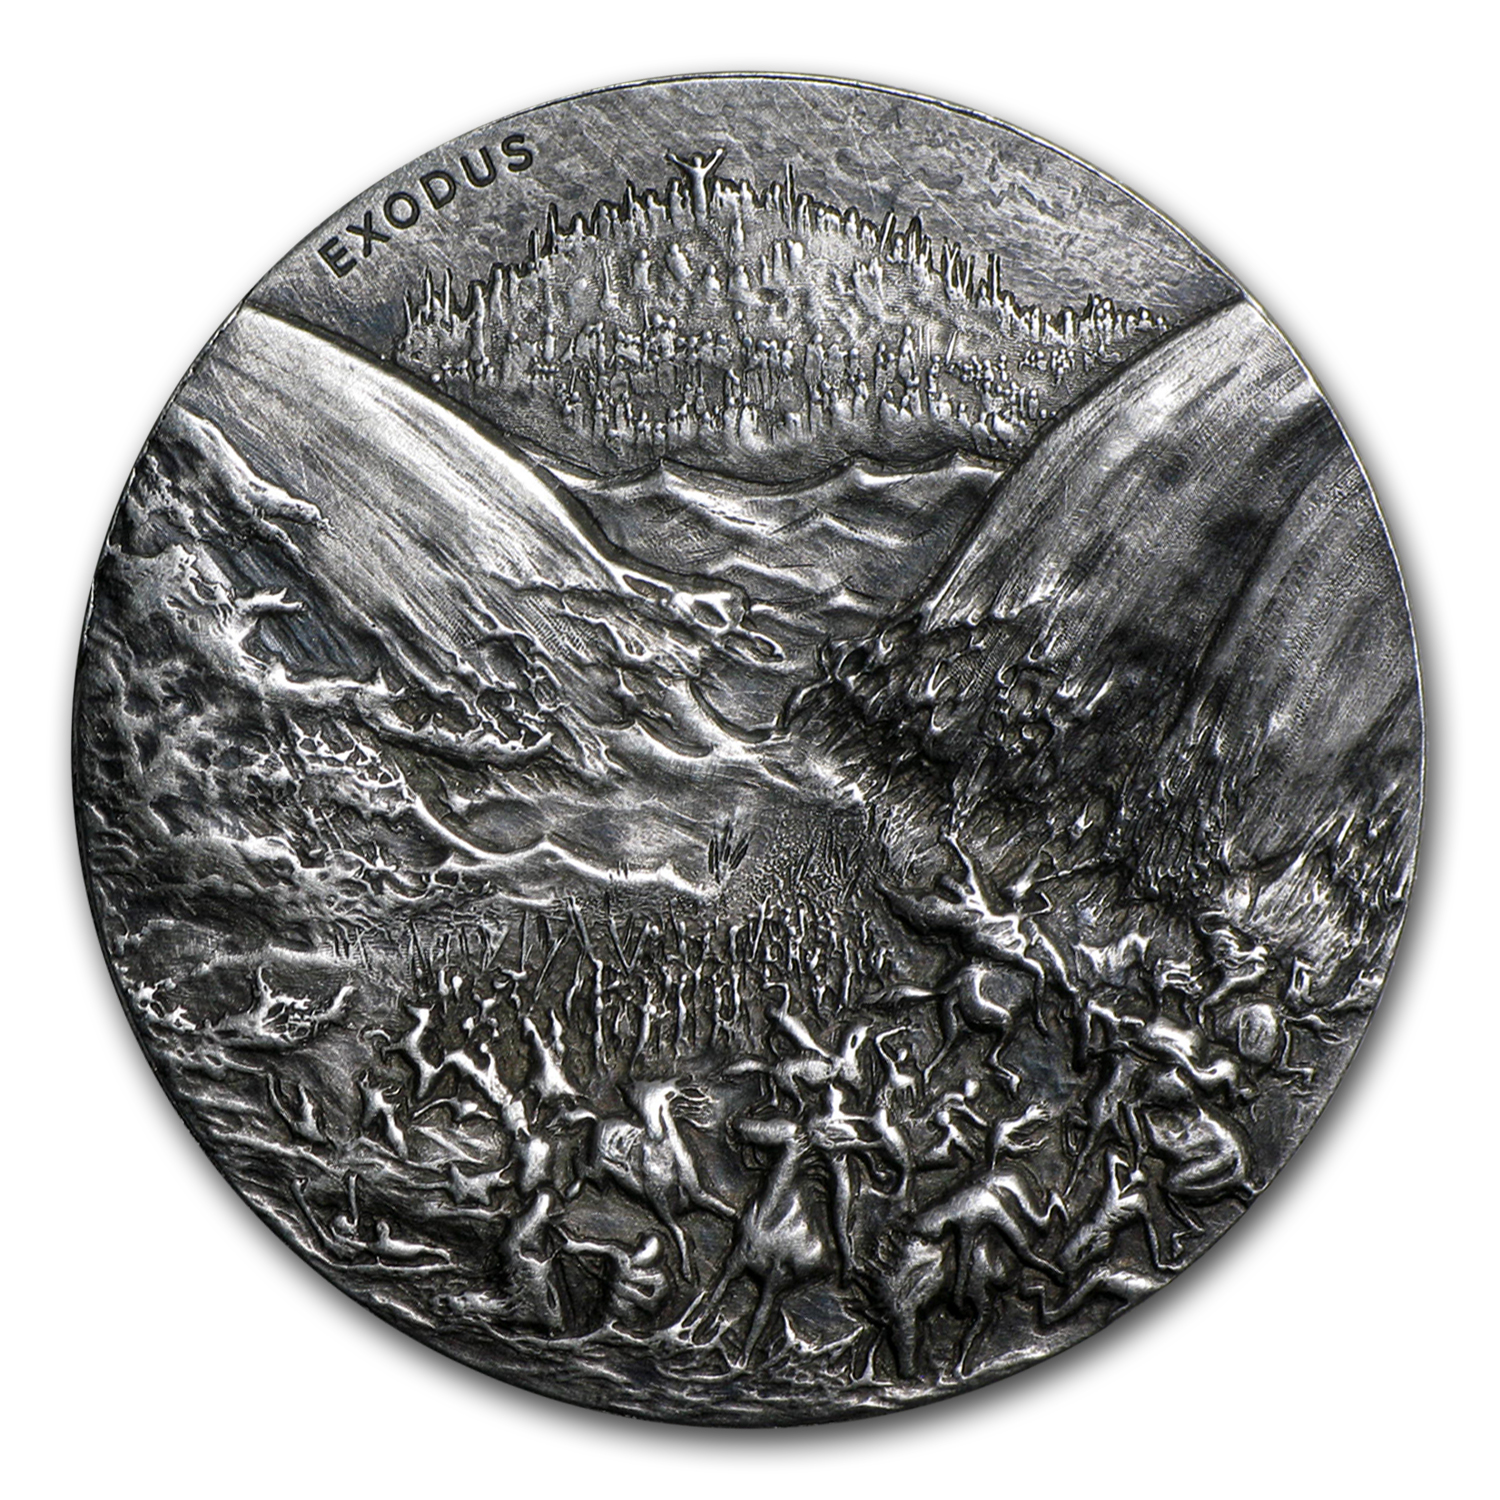 2 oz Silver Coin - Biblical Series (Exodus)